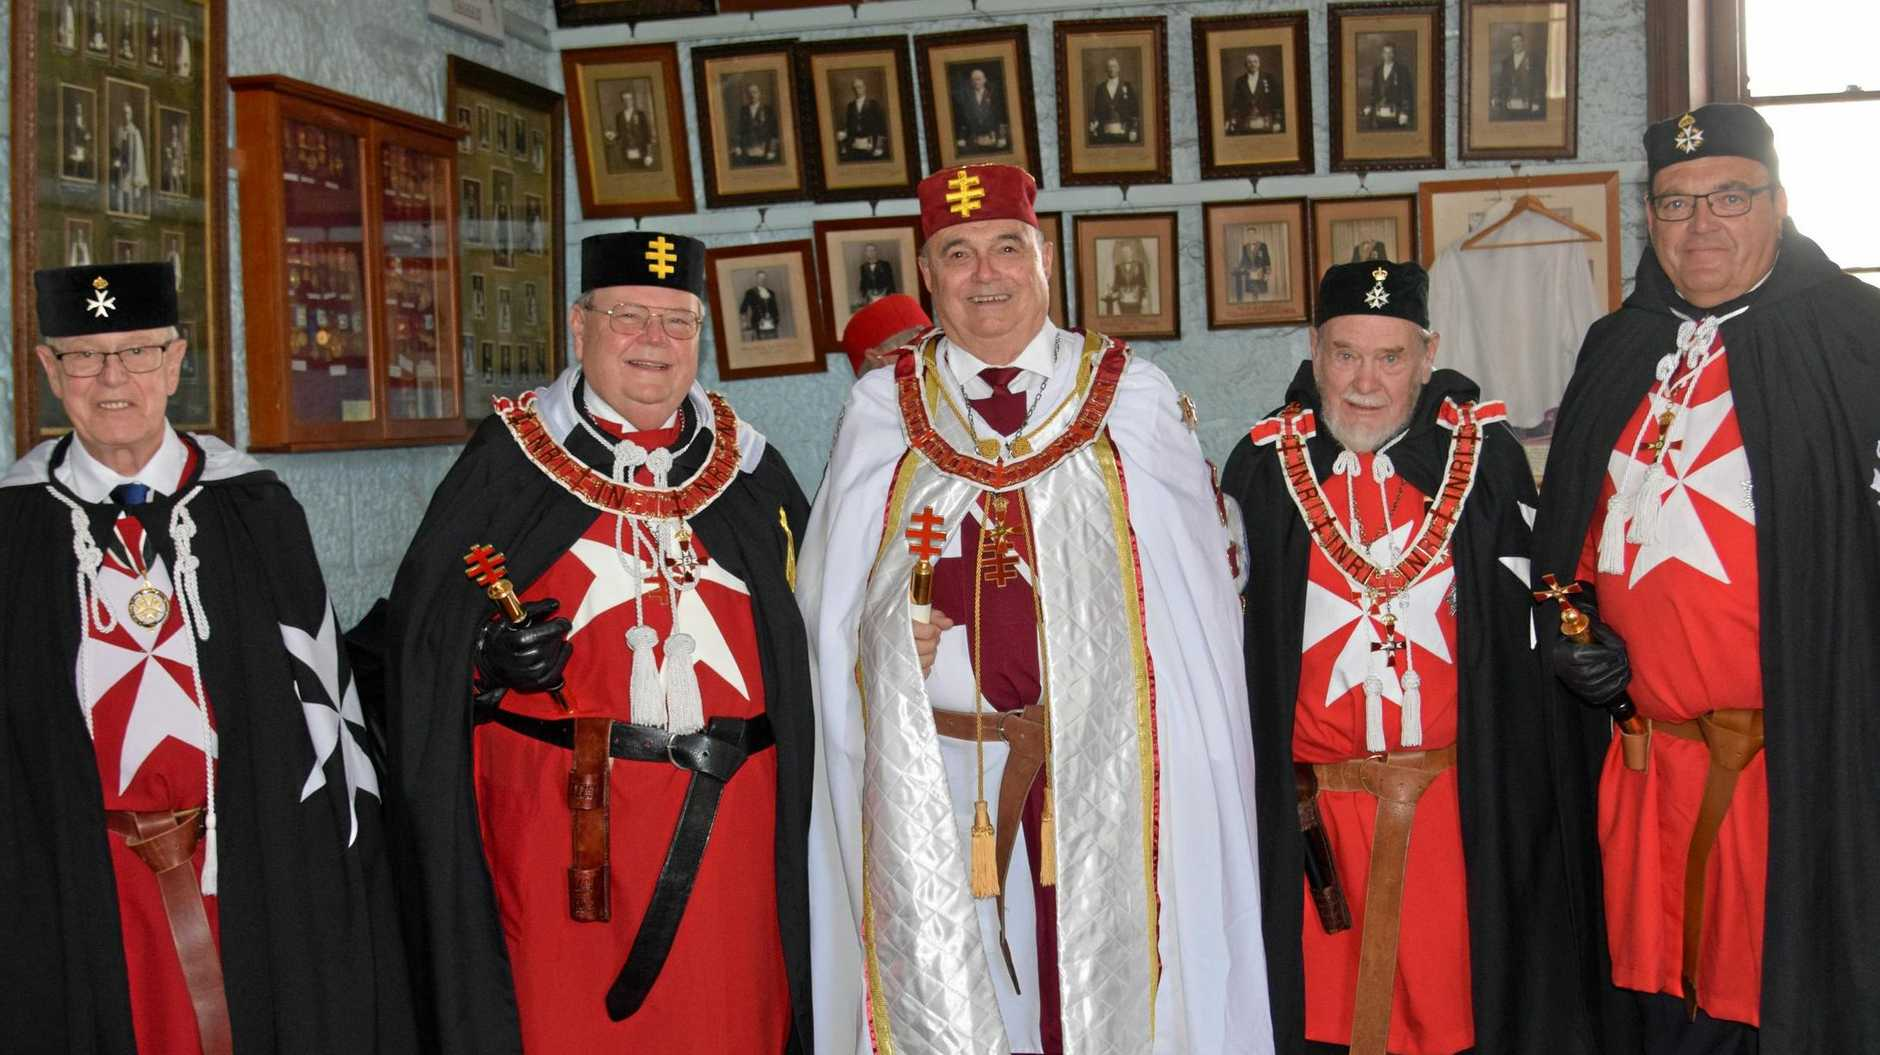 GREAT MEETING: Knights Templar Queensland grand master Bob Bennett (centre) with (from left) great marshall Michael Henwood, Great Priority of New South Wales and Australian Capital Territory grand master Richard Pickering, former secretary Don Beal and great sub prior of Malta John Clark at the Malta meeting in Warwick yesterday.